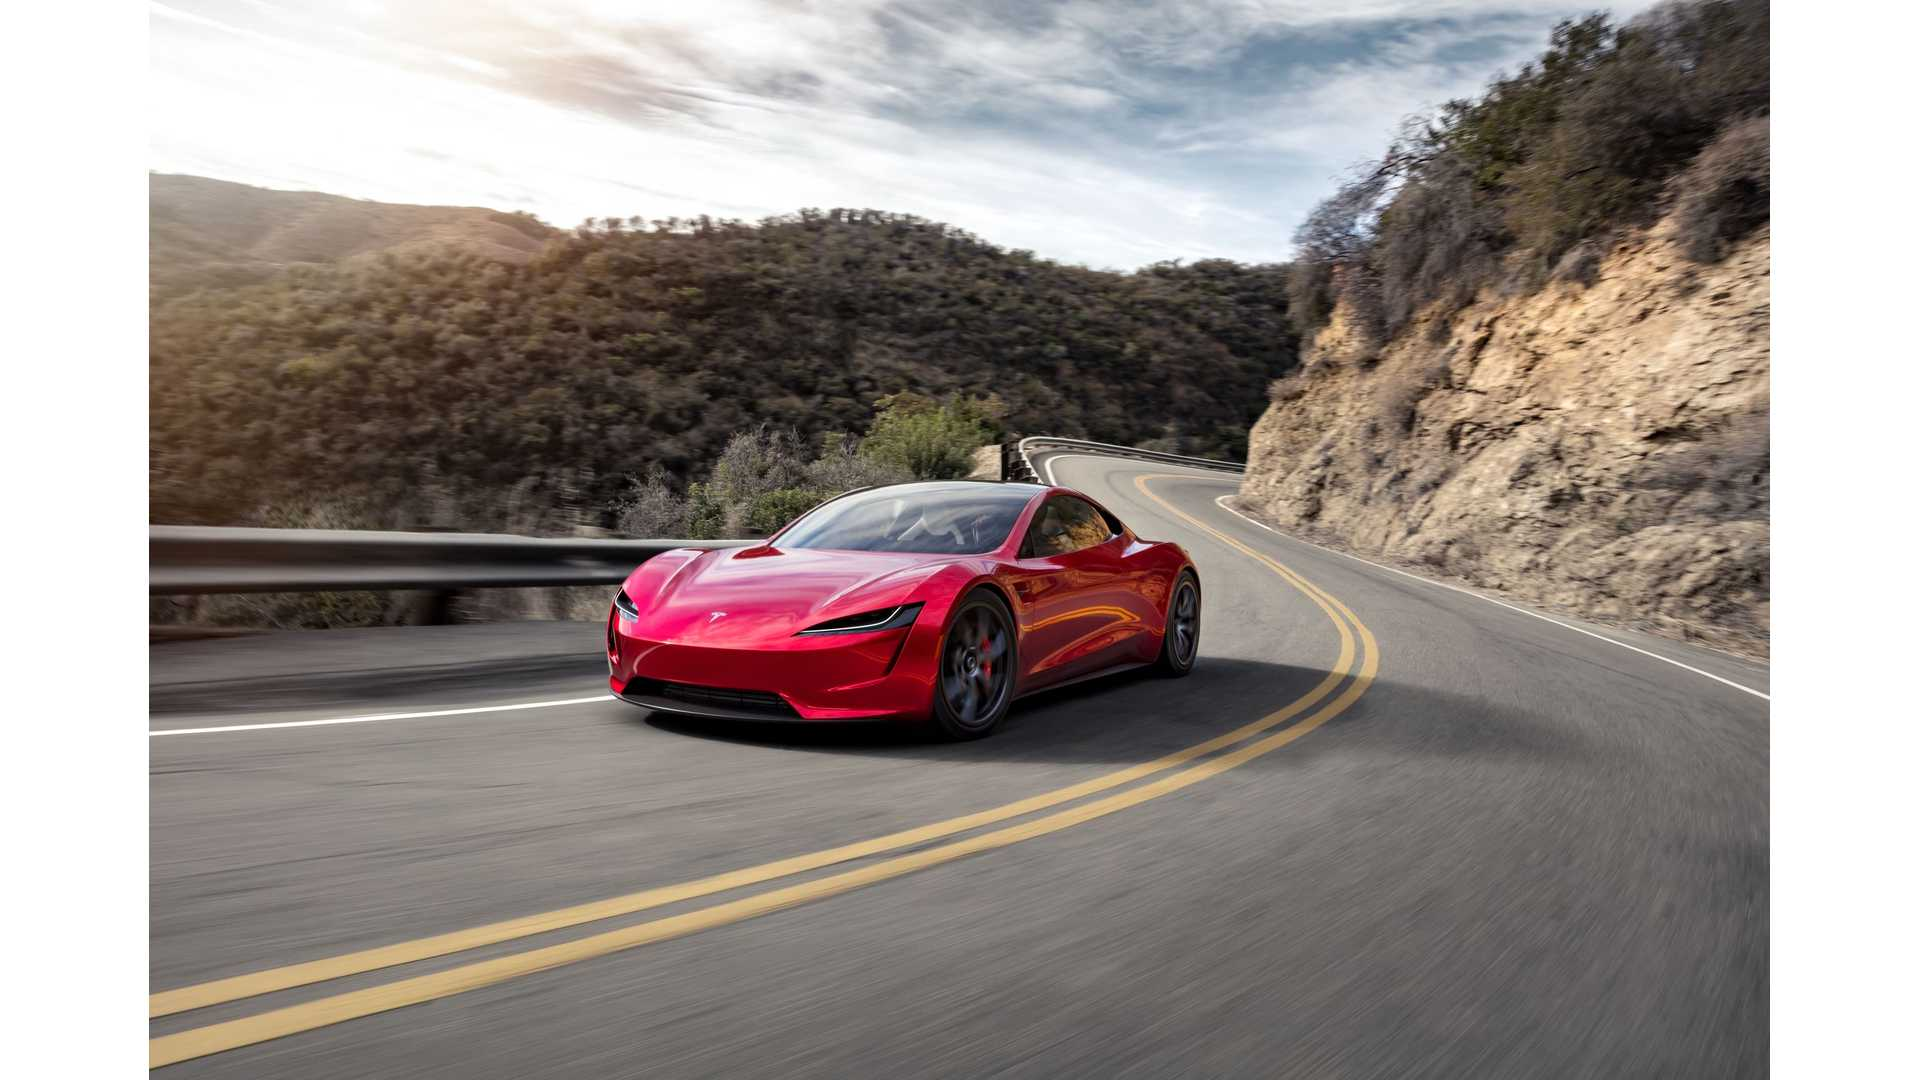 Tesla Releases New Roadster Acceleration Video: Lightning Quick